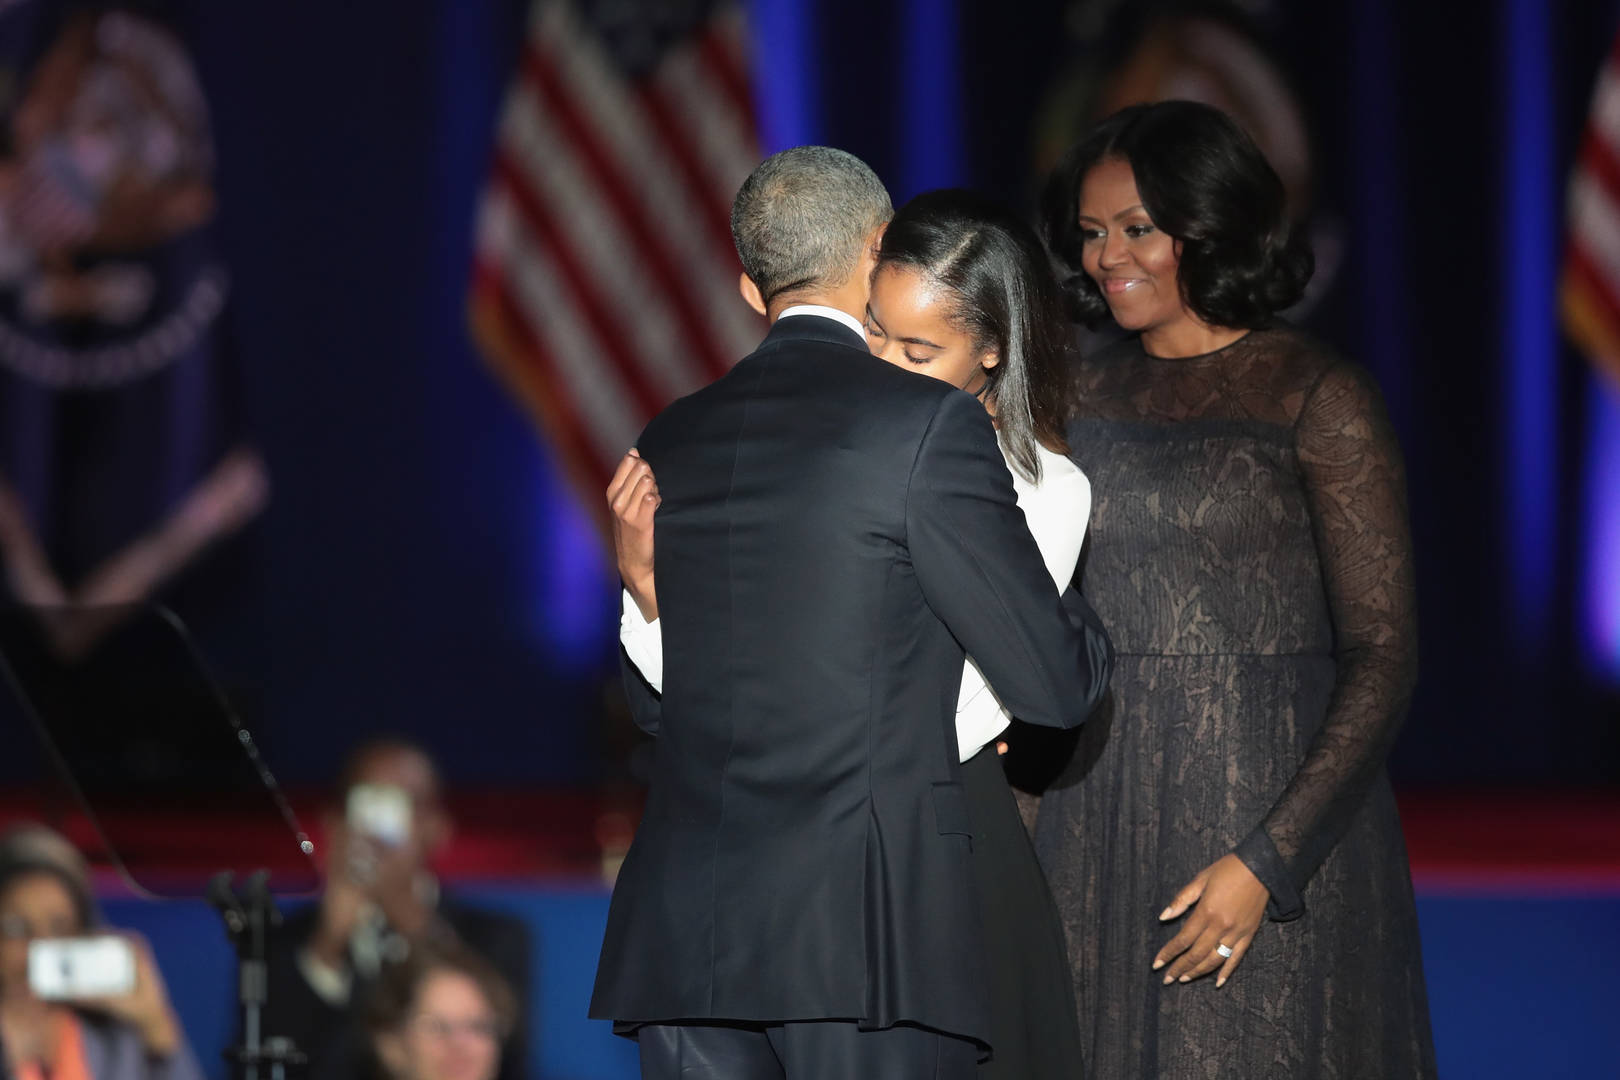 President Barack Obama greets his wife Michelle and daughter Malia following his farewell speech to the nation on January 10, 2017 in Chicago, Illinois. President-elect Donald Trump will be sworn in the as the 45th president on January 20.